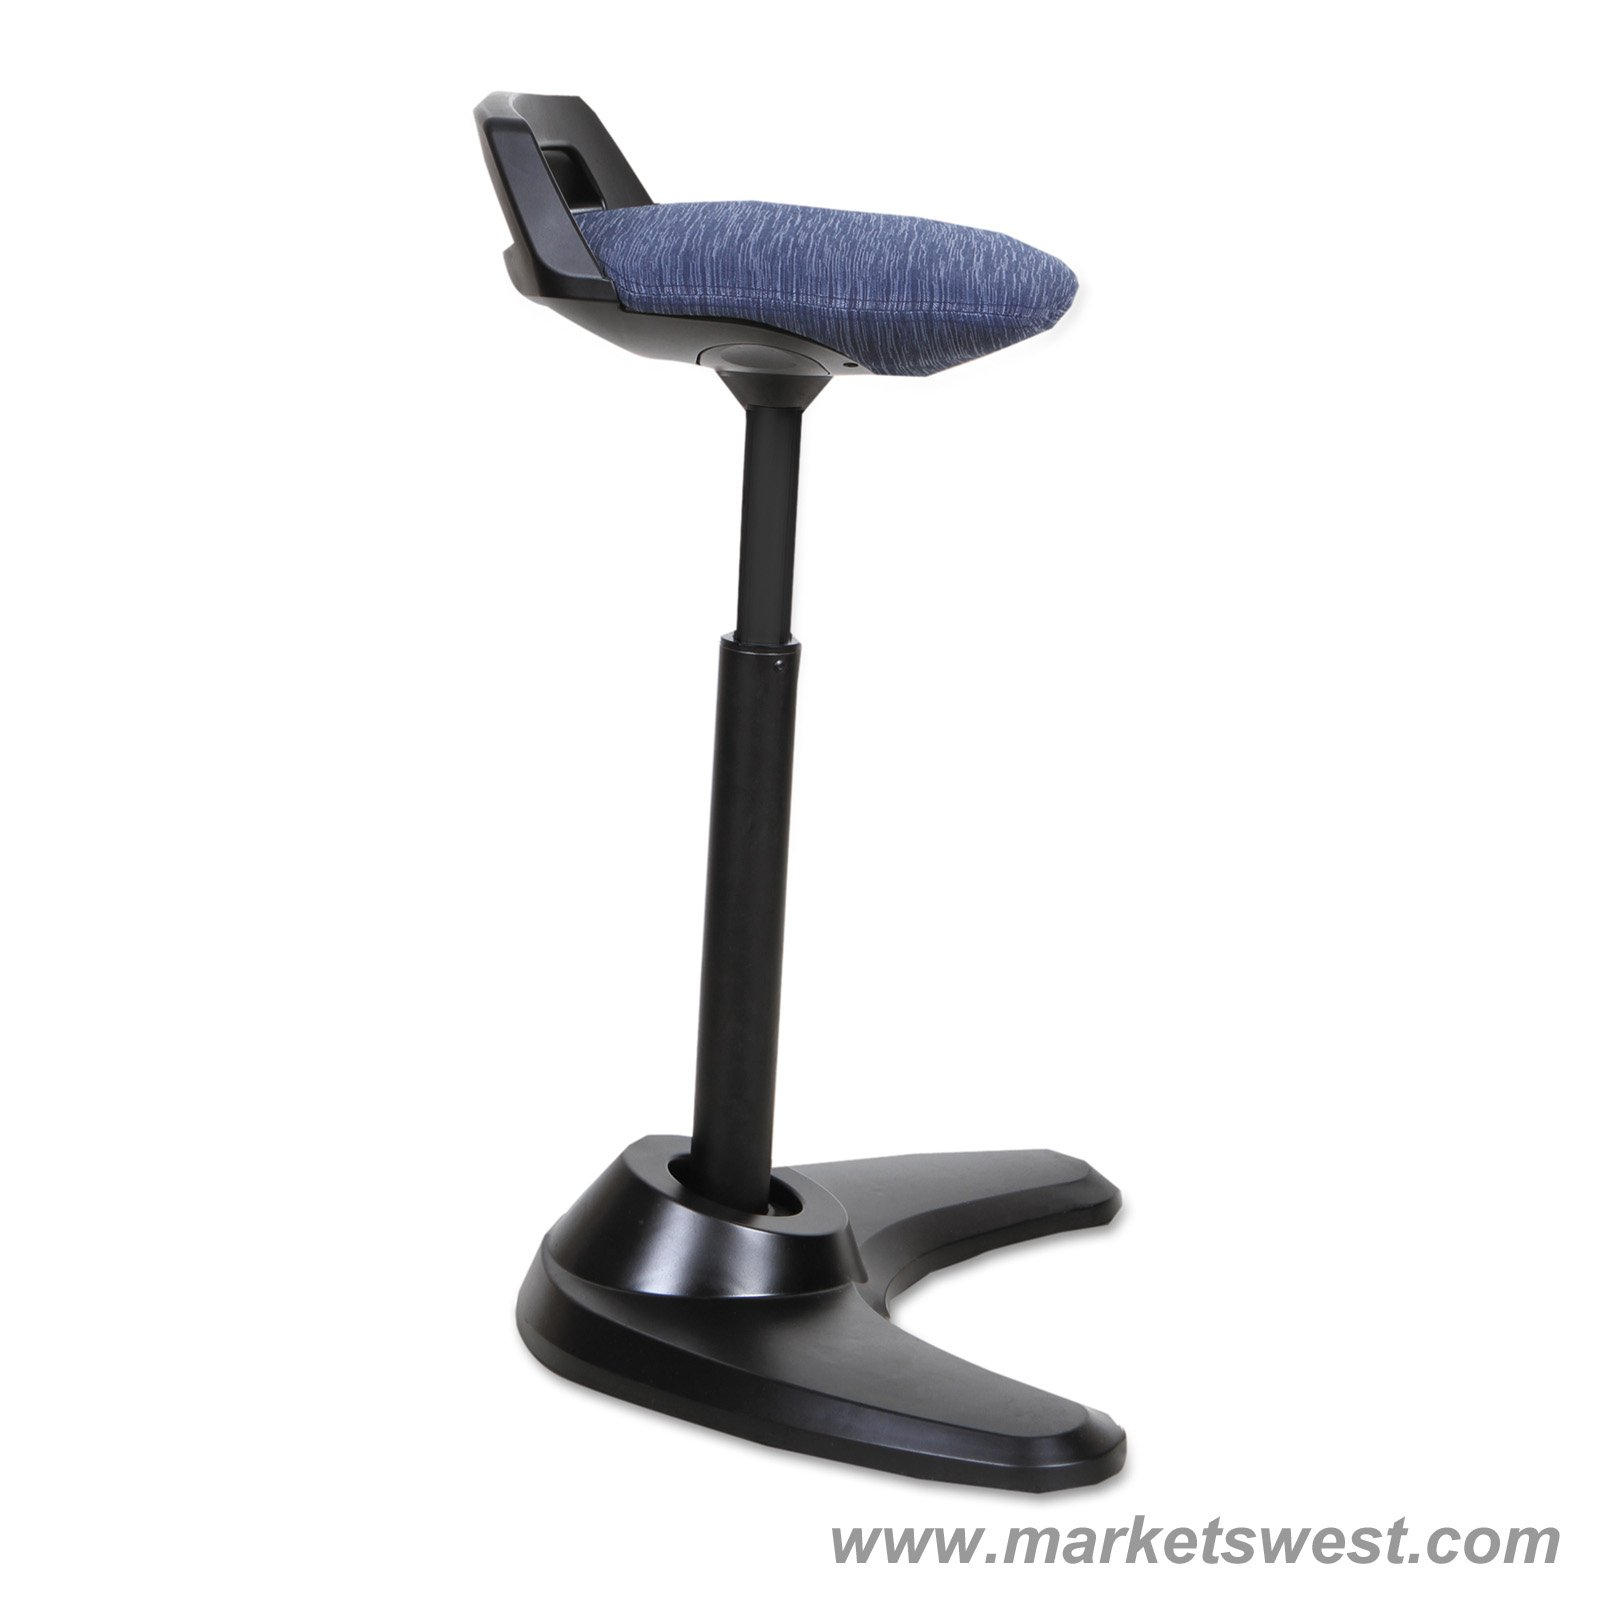 sit stand use pages chair detailed tulean in by specification systems mey comfort stool leaning